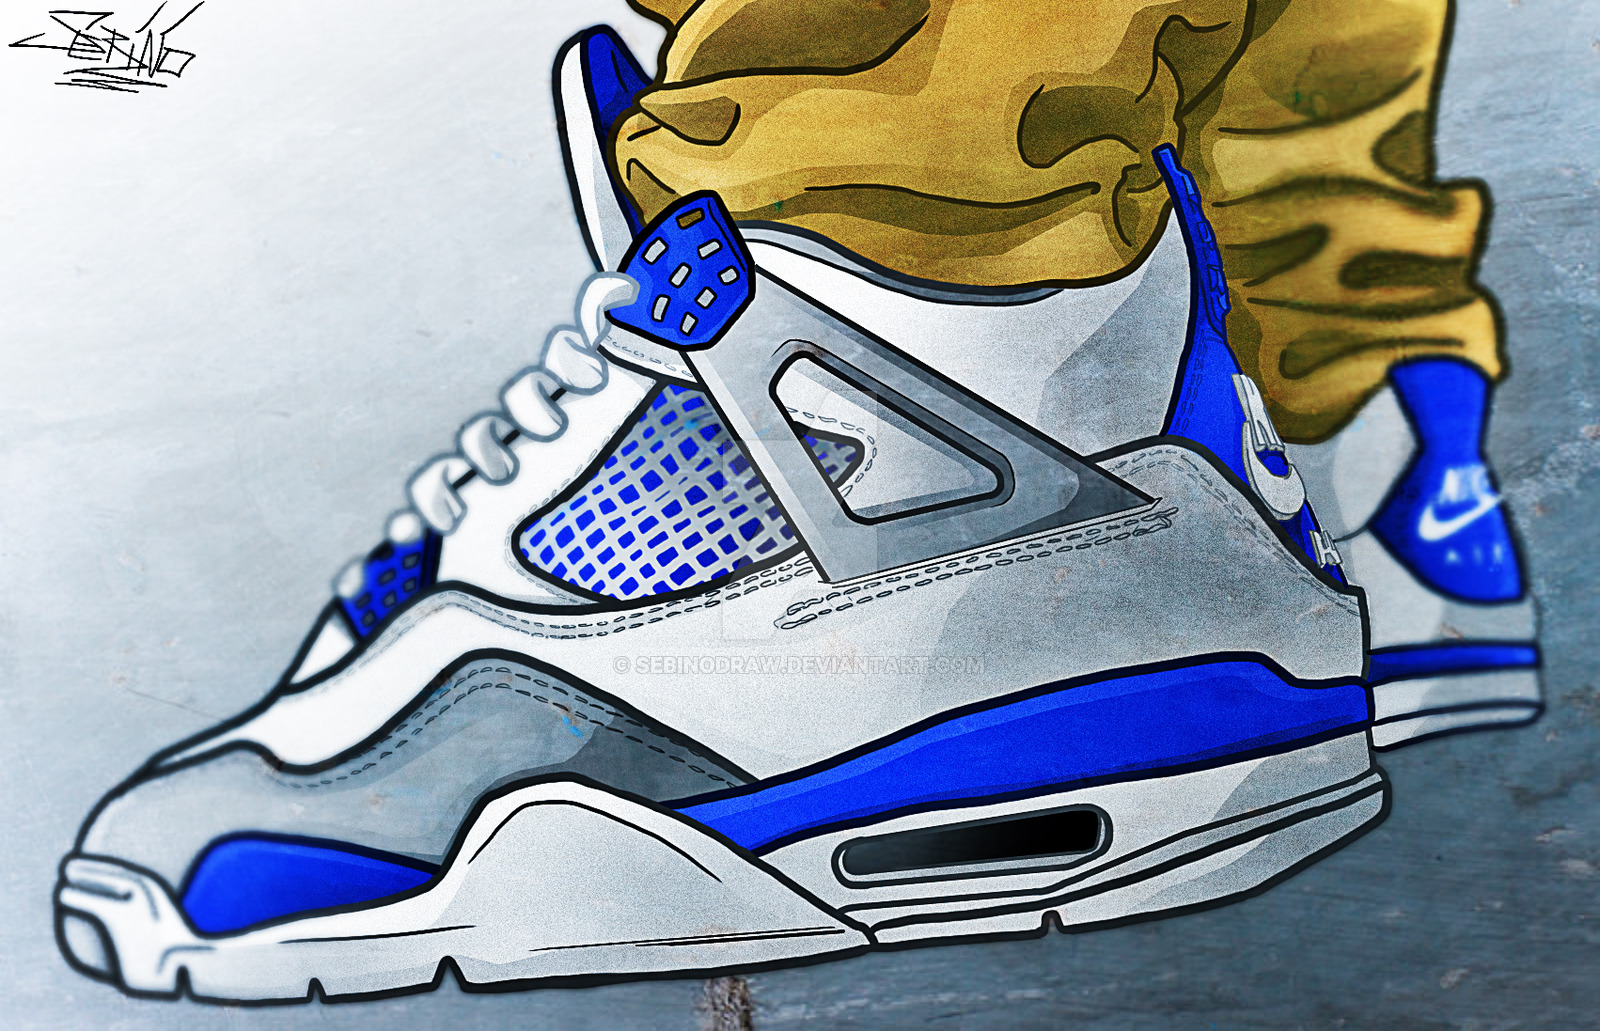 1600x1031 Jordan Iv Military Blue By Sebinodraw